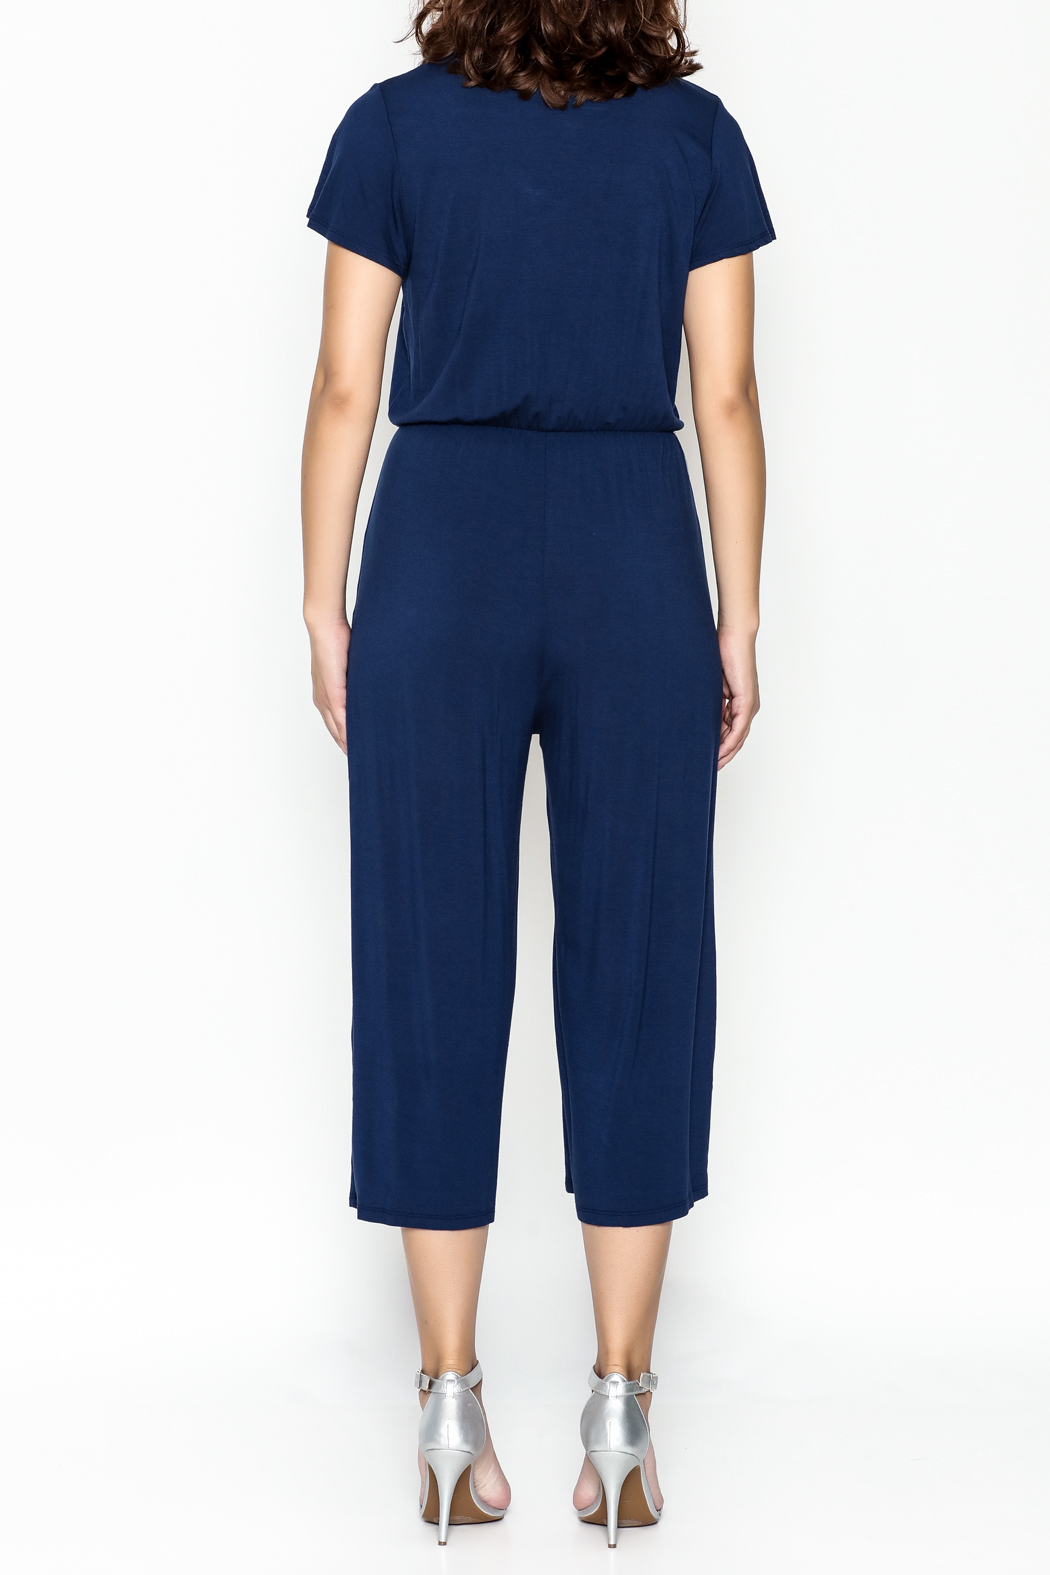 Everly The Sophie Jumpsuit - Back Cropped Image